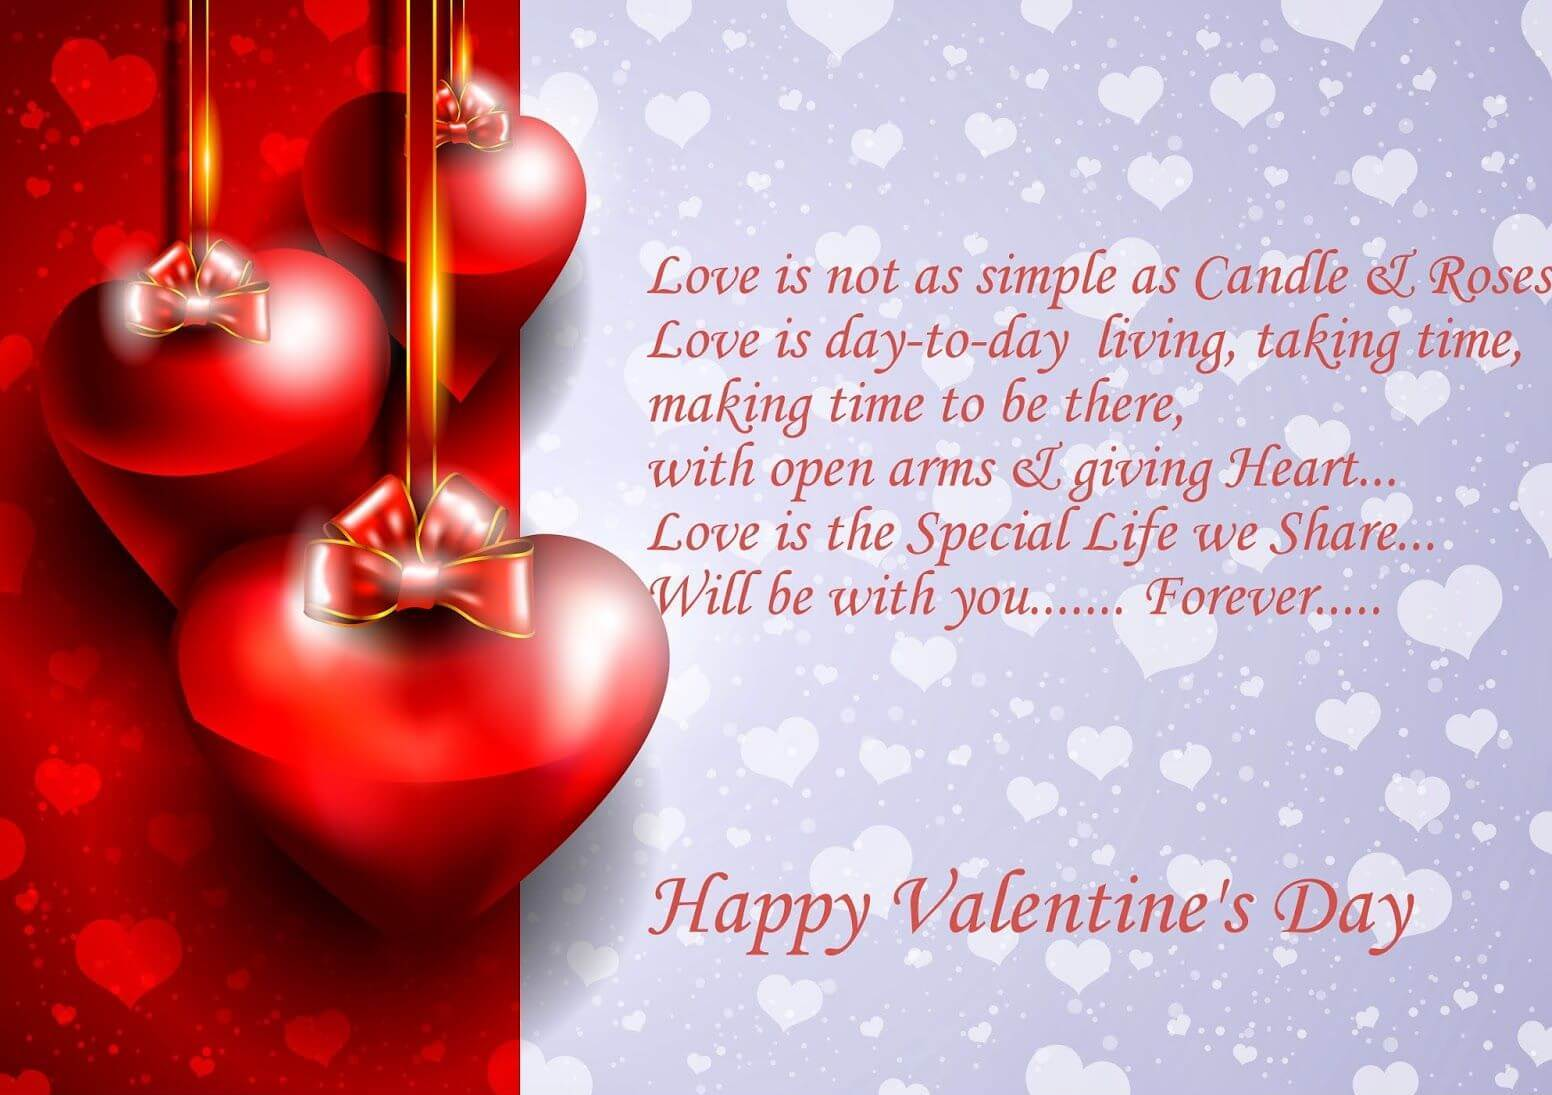 Happy Valentines day Love Quote Image Wallpaper Wishes For GF BF